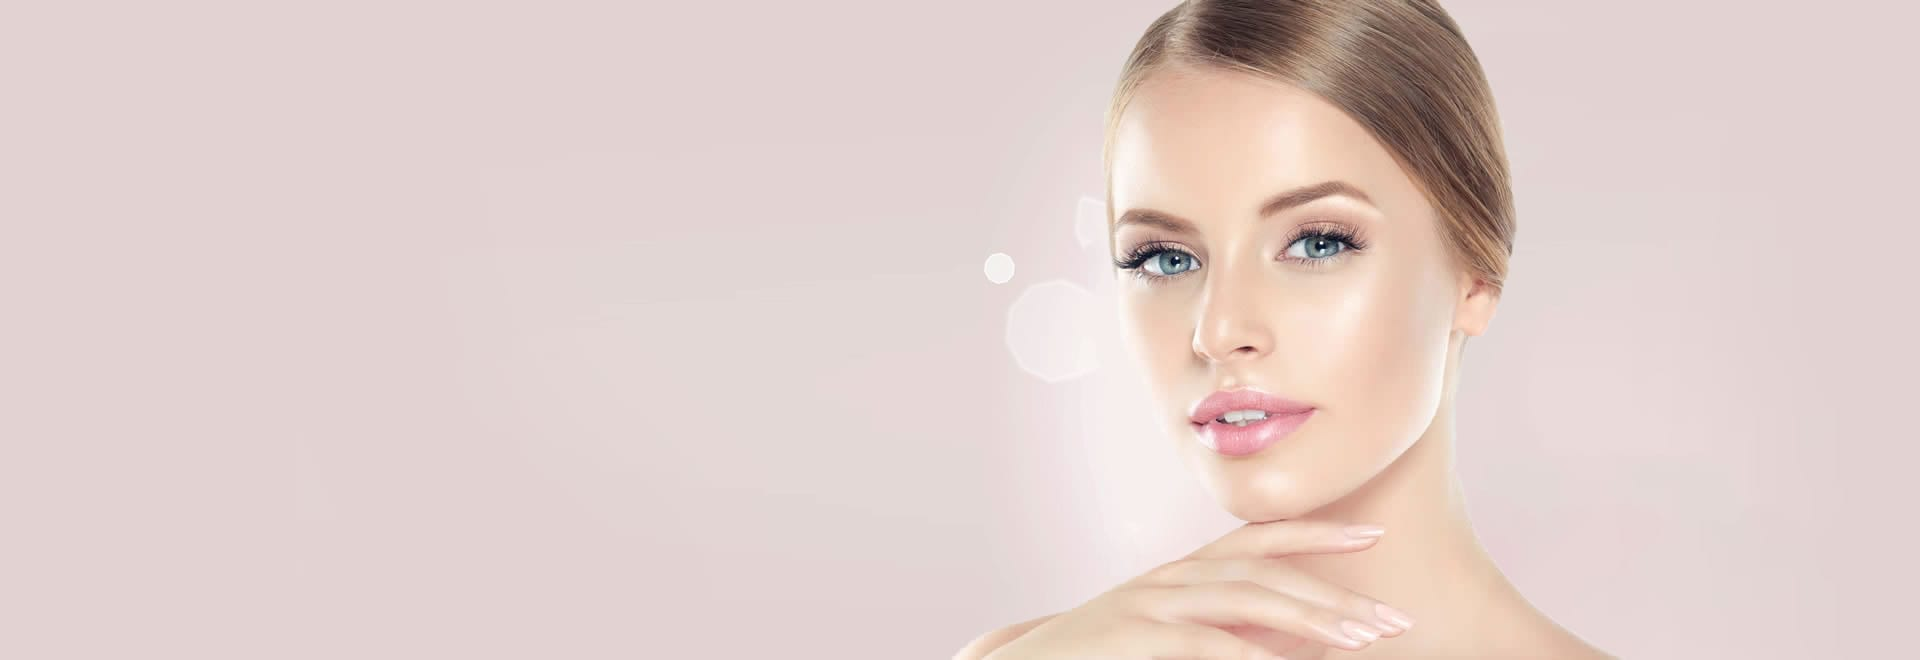 bournemouth laser clinic homepage slideshow image skin is amazing